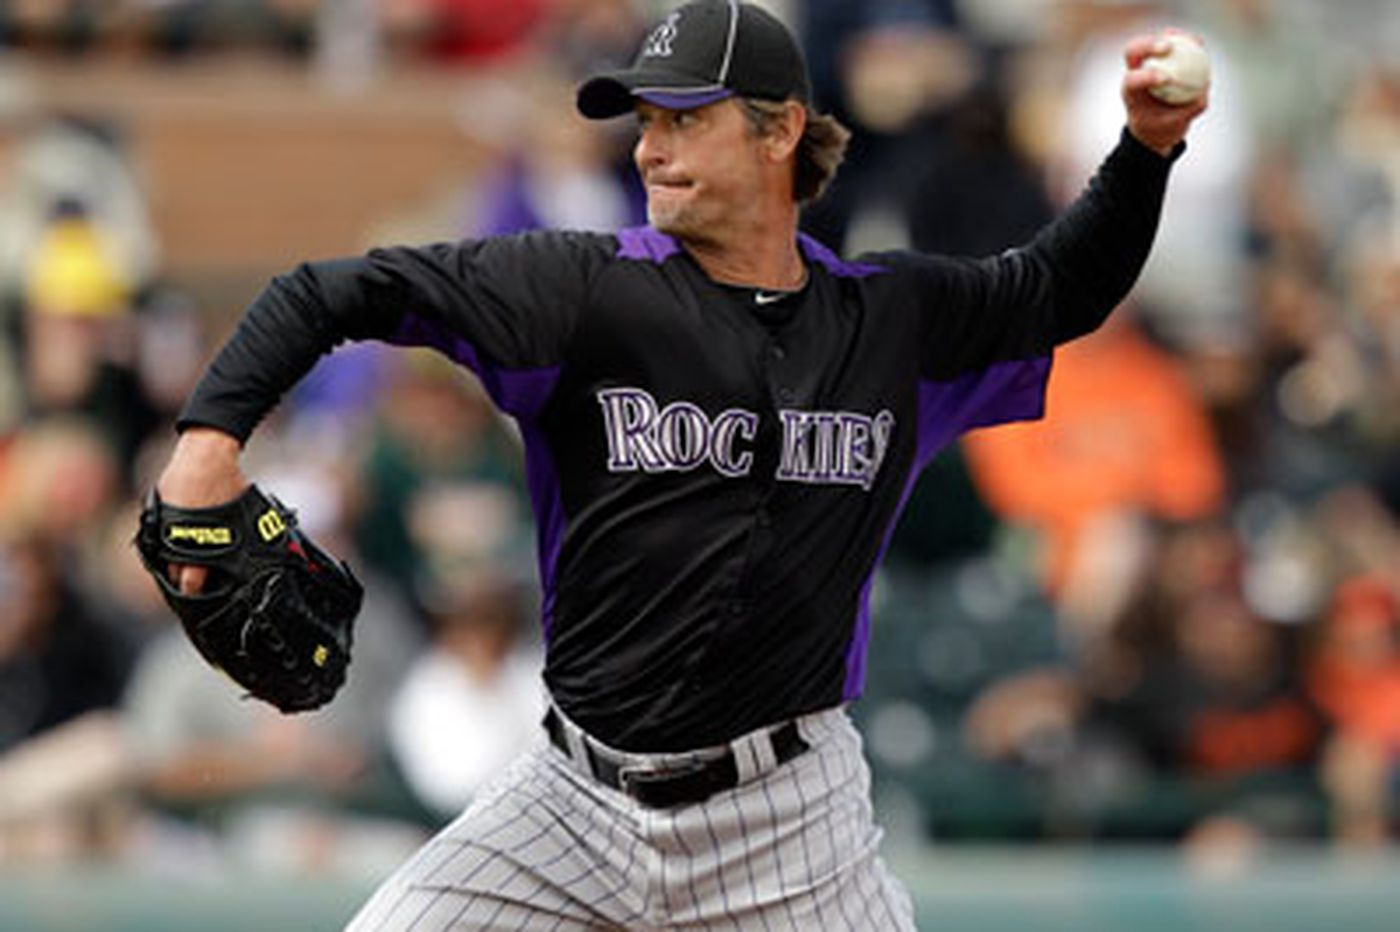 Jamie Moyer is cheating time with the Rockies